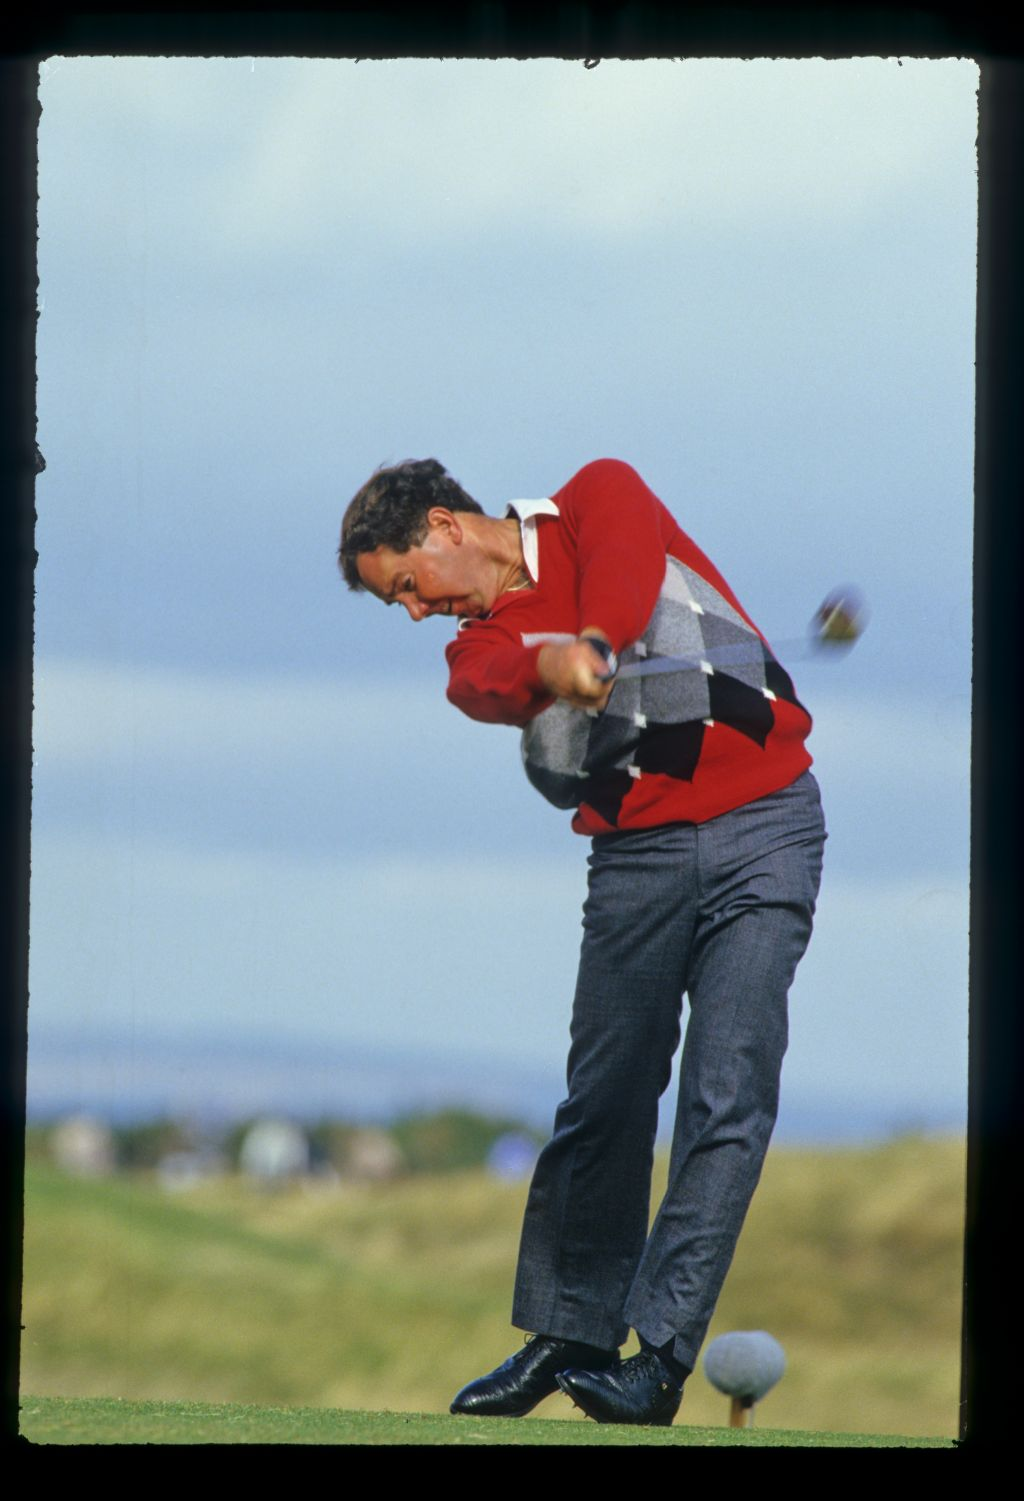 Mark O'Meara just after impact during the 1986 Dunhill Cup